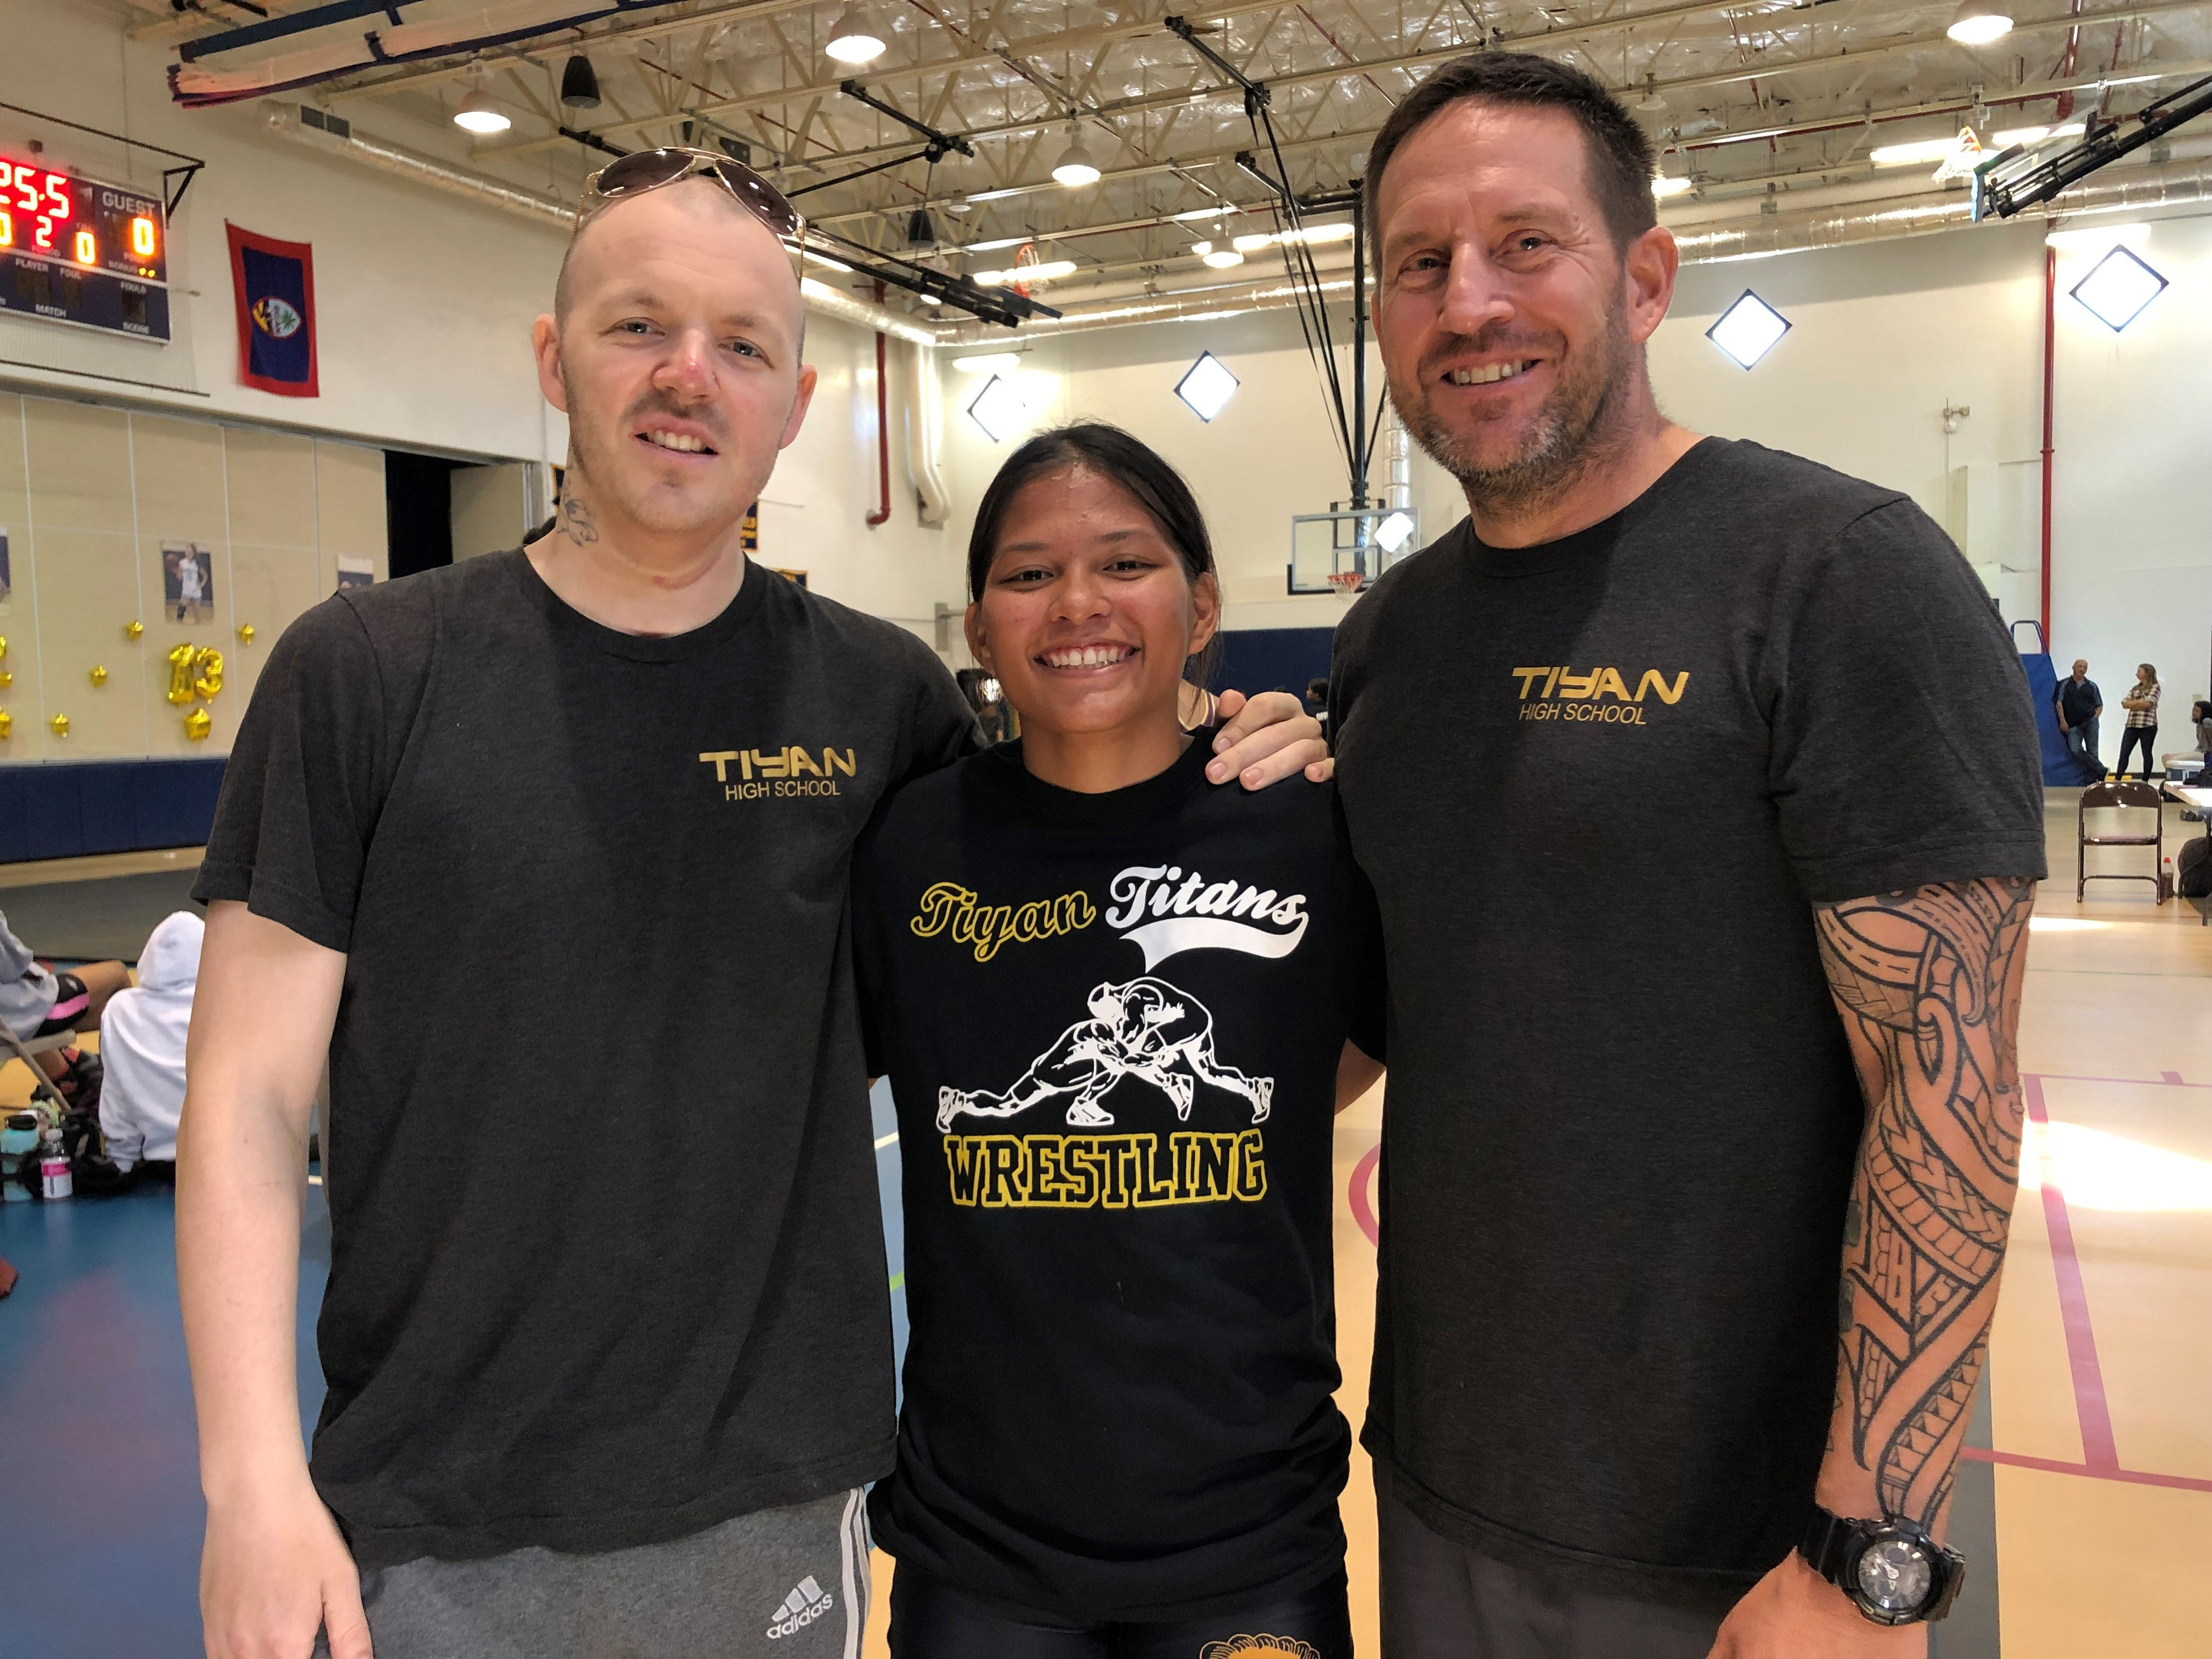 Nate Tully, left, is shown with wrestler Tiara Fernandez and Steve Bair during a meet in this file photo from November 2019. Tully died early Saturday morning of cancer.